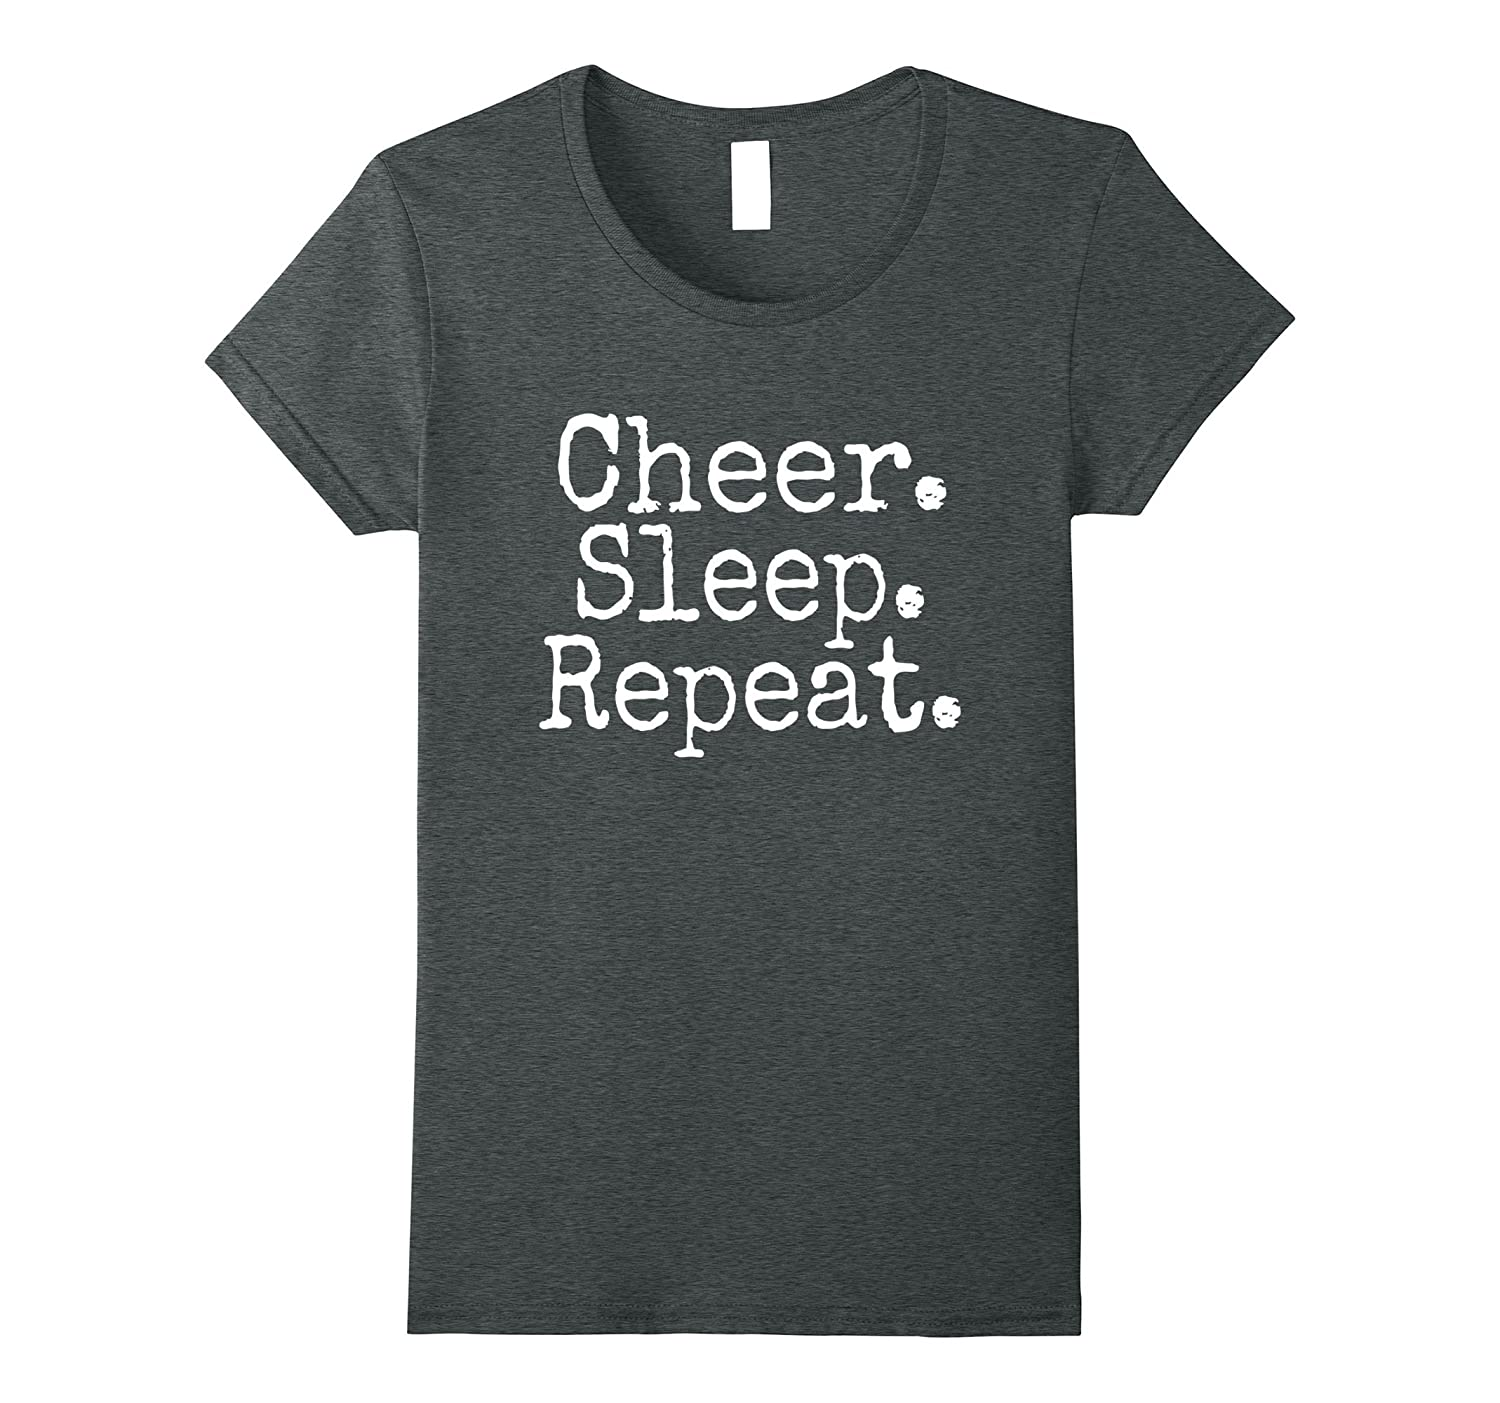 Cheer Sleep Repeat T-Shirt (Cheerleader)